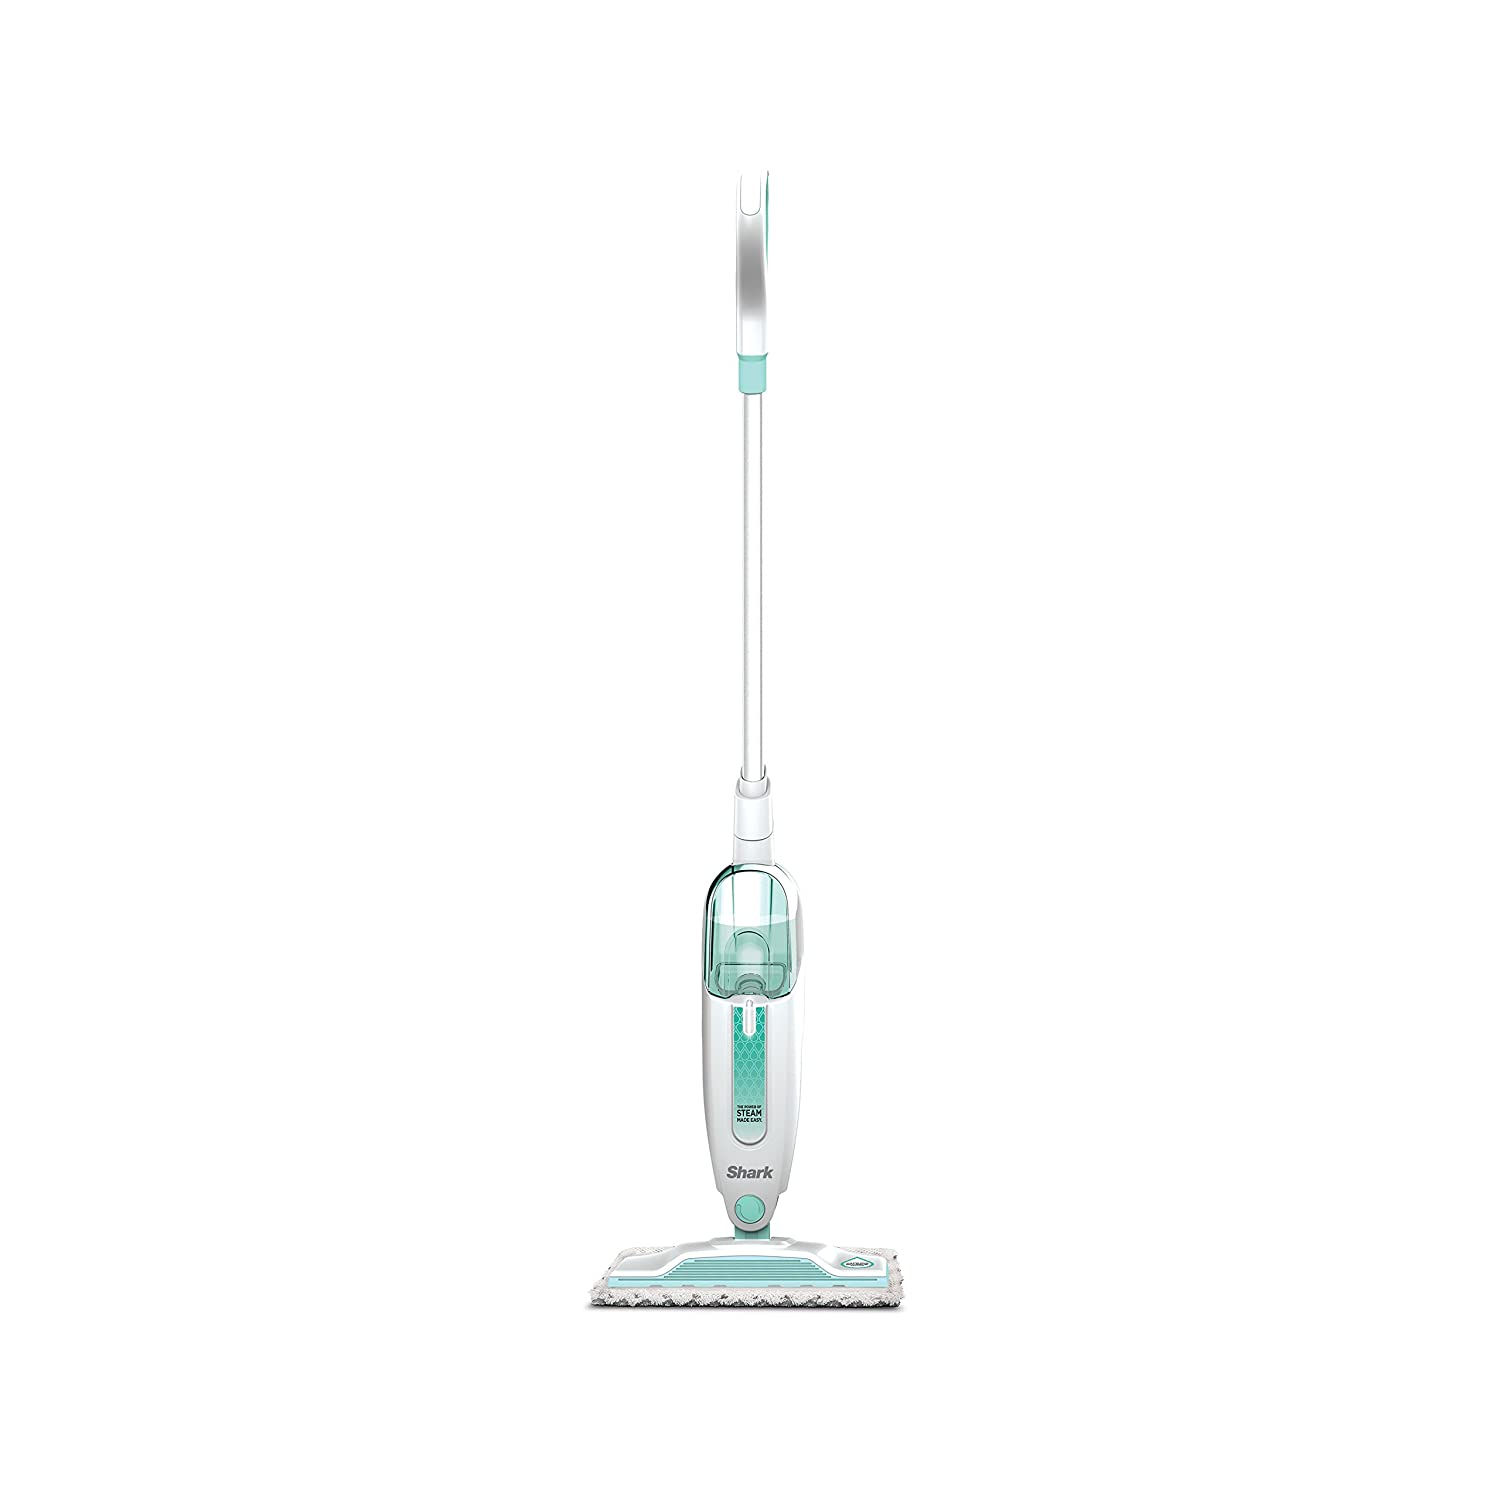 Shark Steam Mop Hard Floor Cleaner for Cleaning and Sanitizing with XL Removable Water Tank and 18-Foot Power Cord (S1000A) SharkNinja